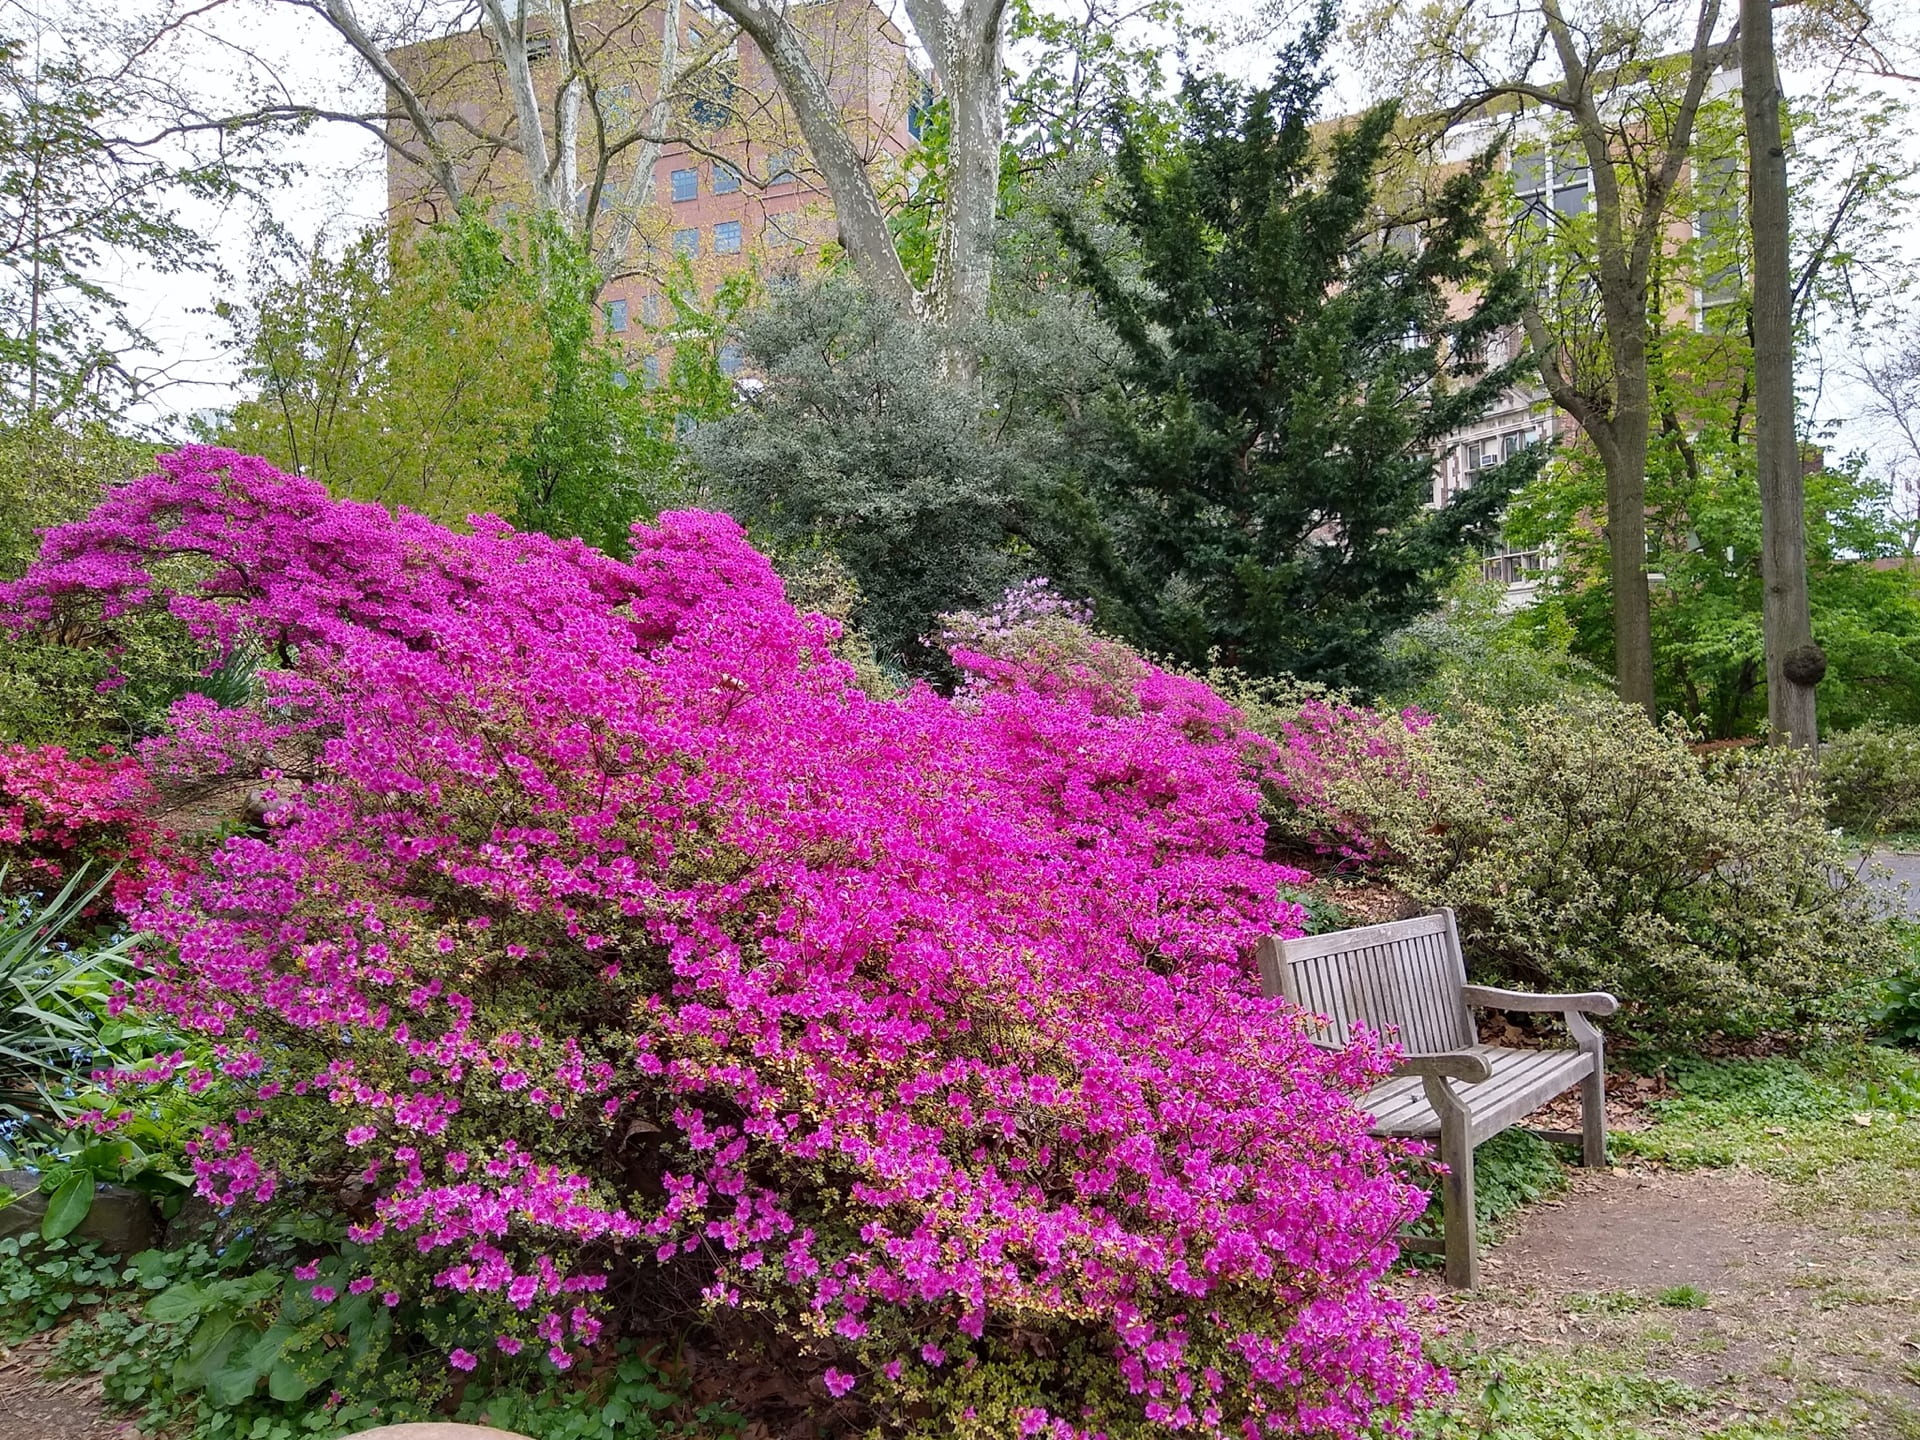 Pink Rhododendrons surround a bench over looking the pond.